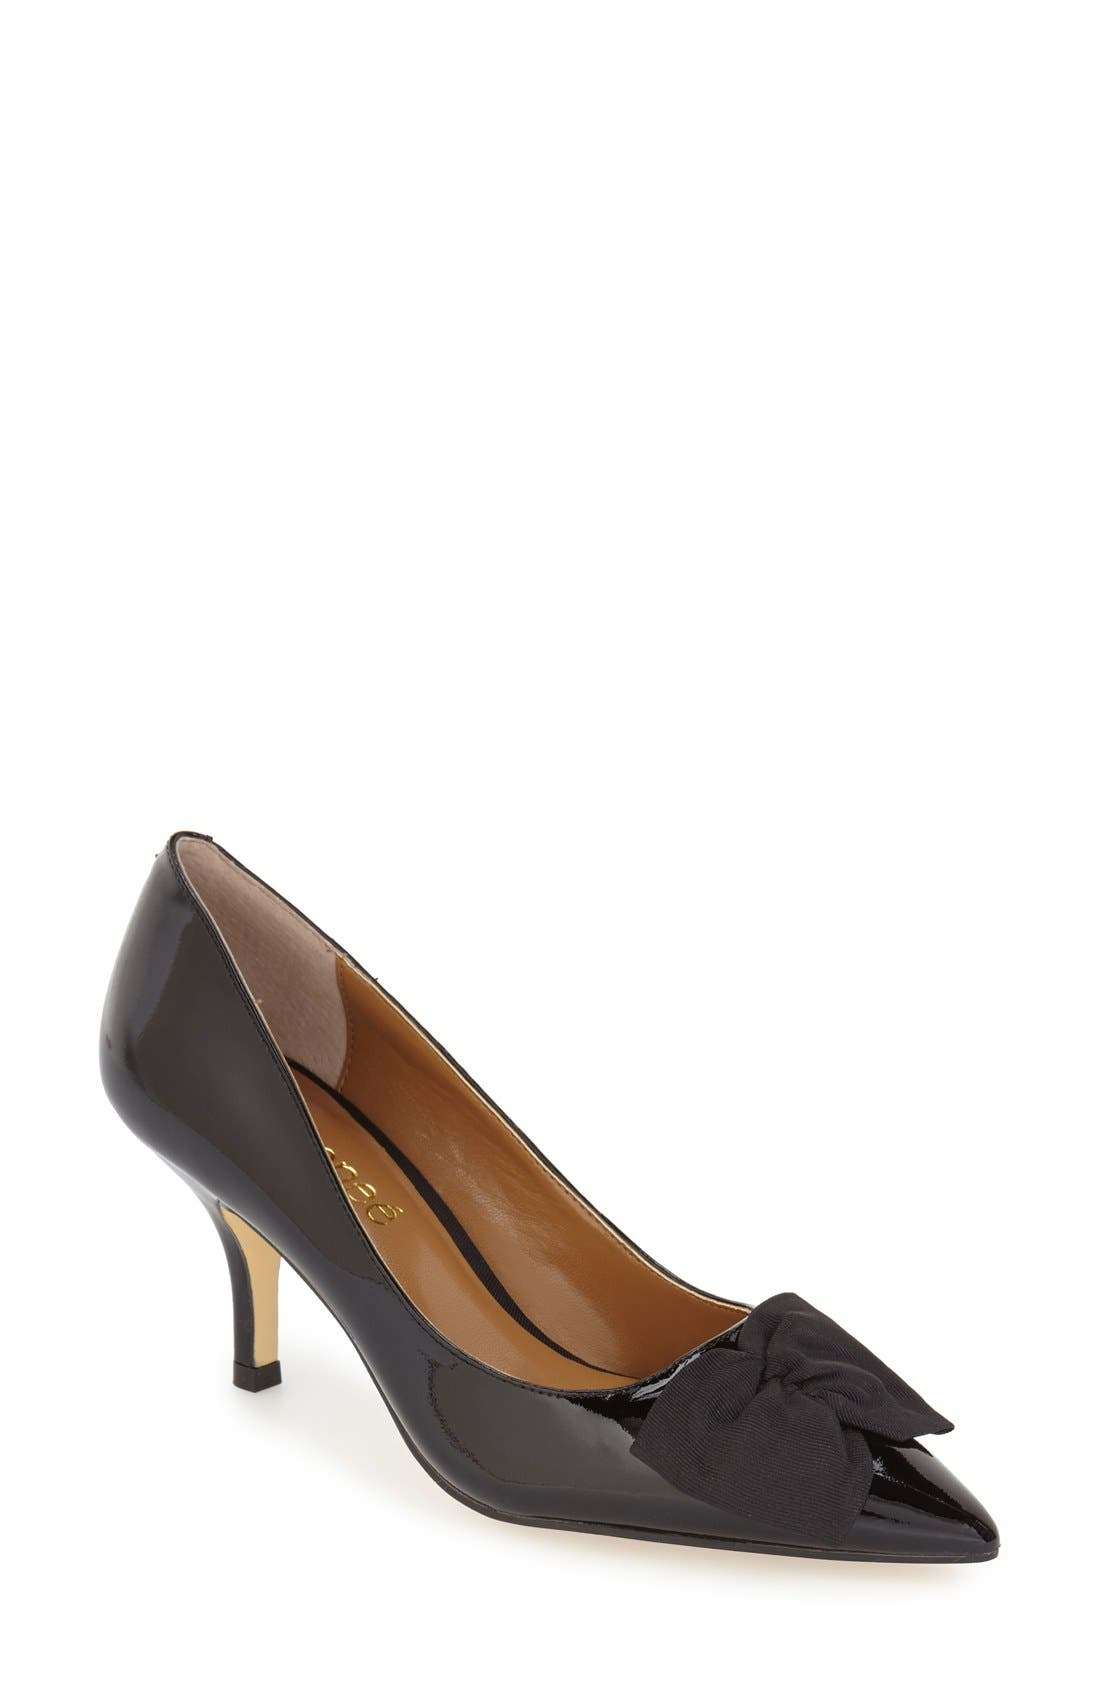 Alternate Image 1 Selected - J. Reneé 'Camley' Pointy Toe Bow Pump (Women)